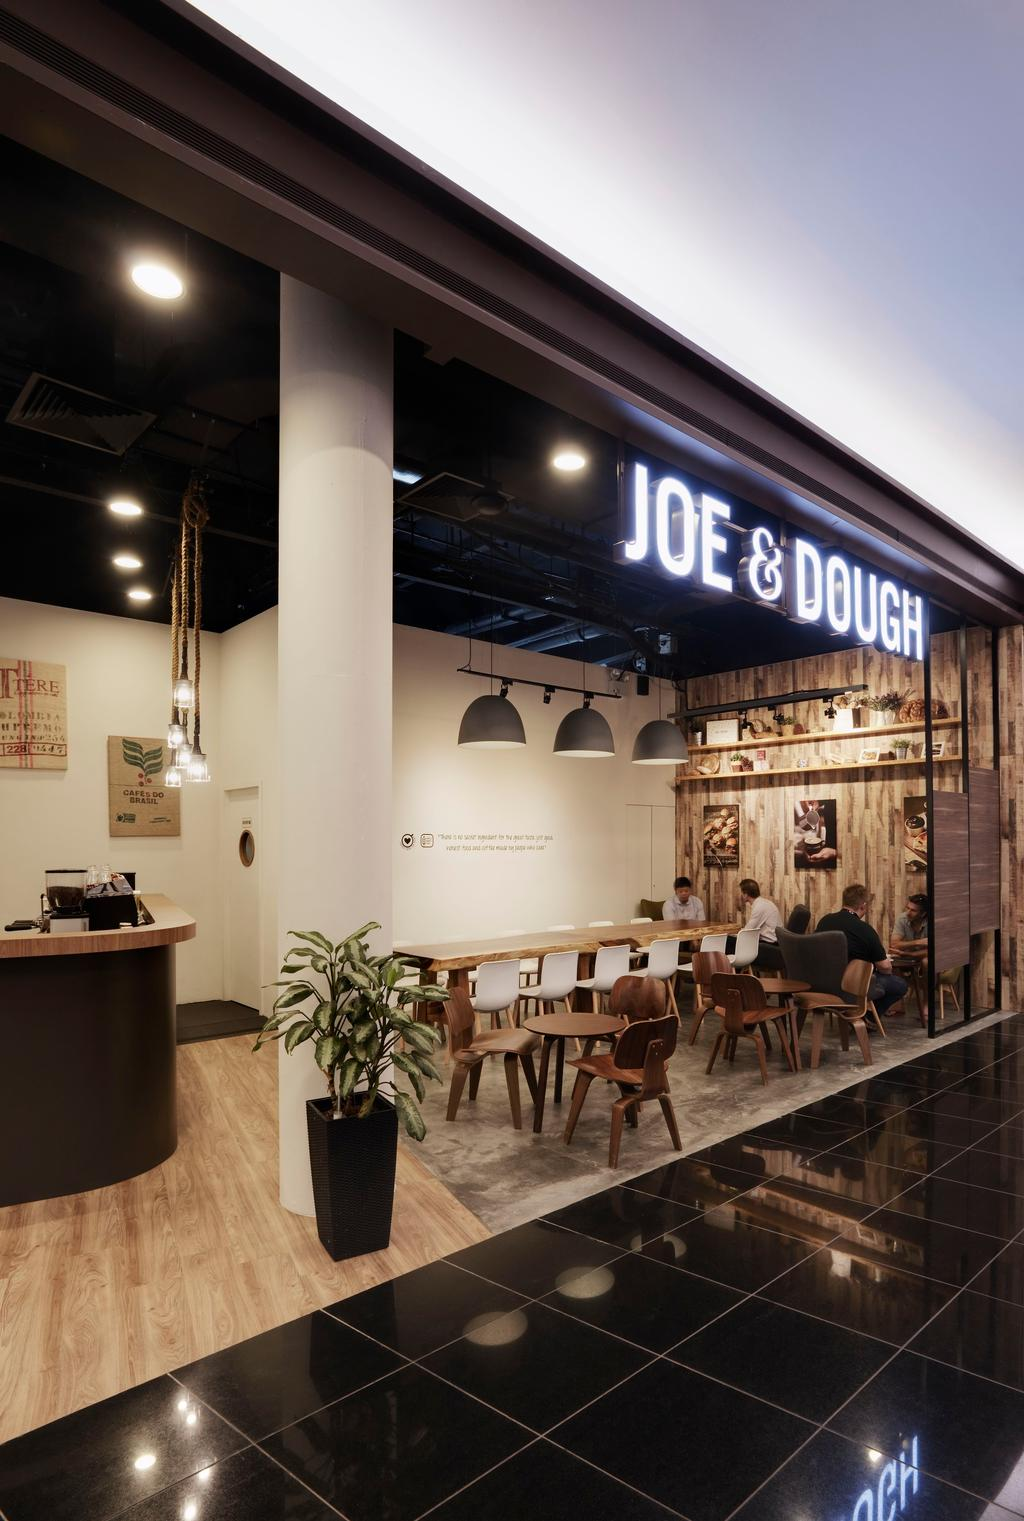 Joe & Dough (Millenia Walk), Commercial, Interior Designer, Liid Studio, Scandinavian, Dining Room, Dining Table, Table, Chair, Parquet, Hanging Light, Lighting, Display Shelf, Shelf, Shelves, Cement Flooring, Wood, Laminate, Wood Laminate, Parquet Wall, Flora, Jar, Plant, Potted Plant, Pottery, Vase, Human, People, Person, Furniture, Couch, Cafe, Restaurant, Reception, Reception Desk